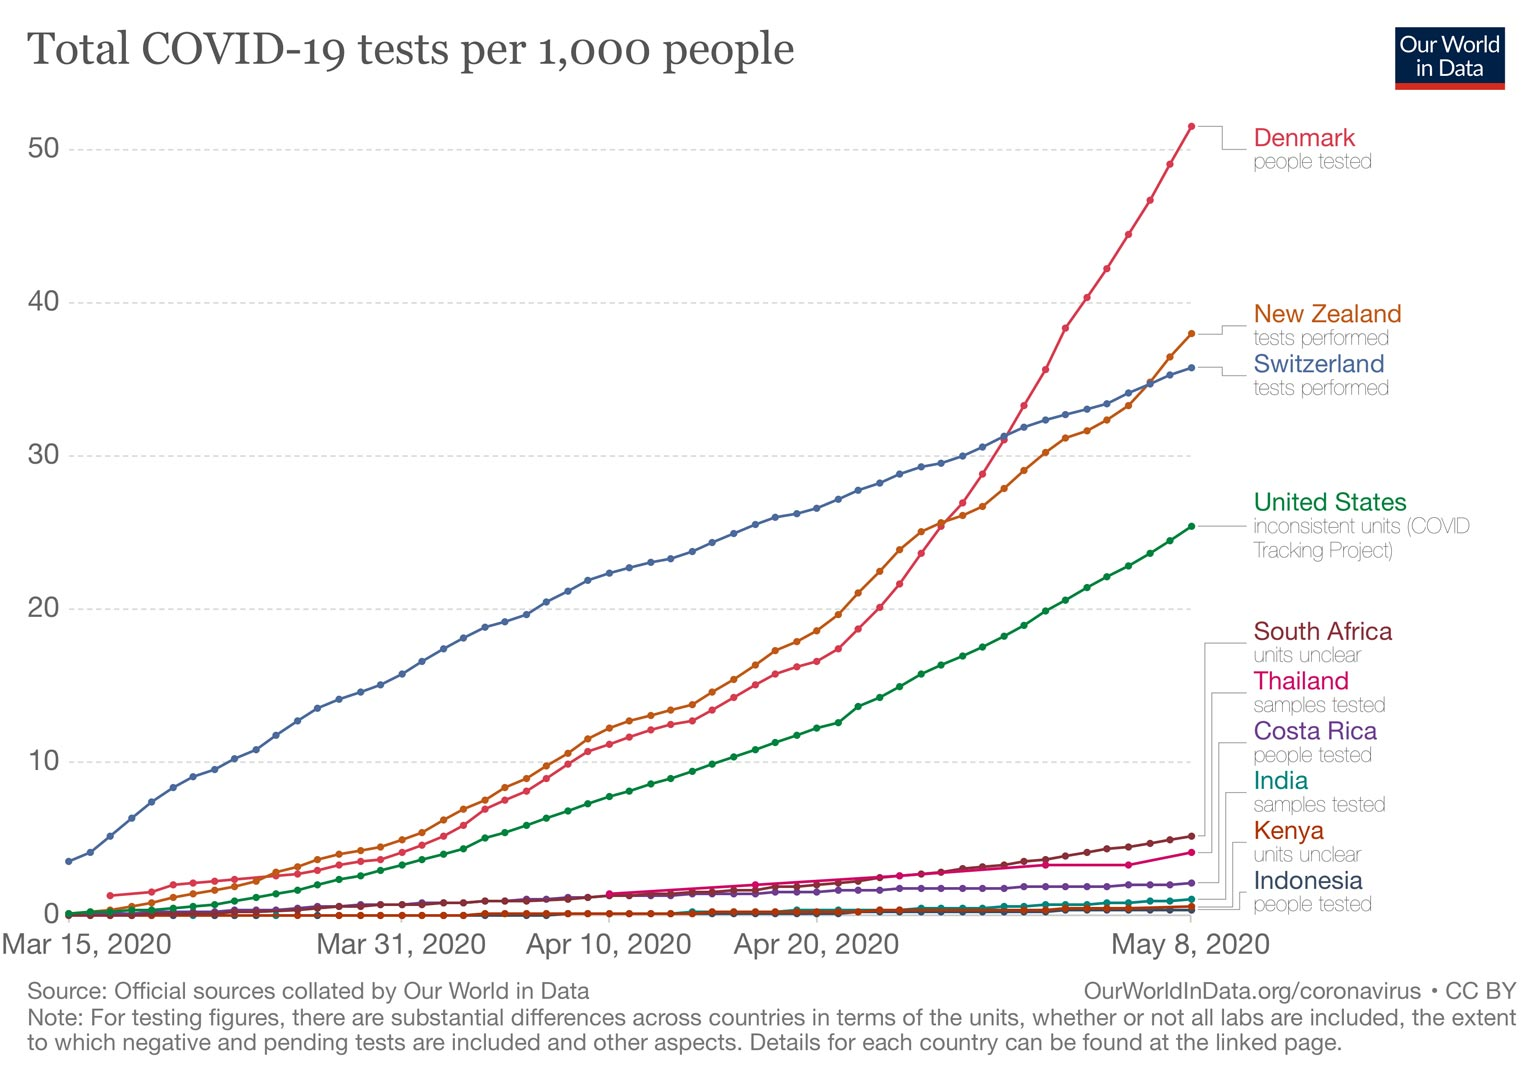 Total COVID-19 tests per 1,000 people; source: Our World in Data